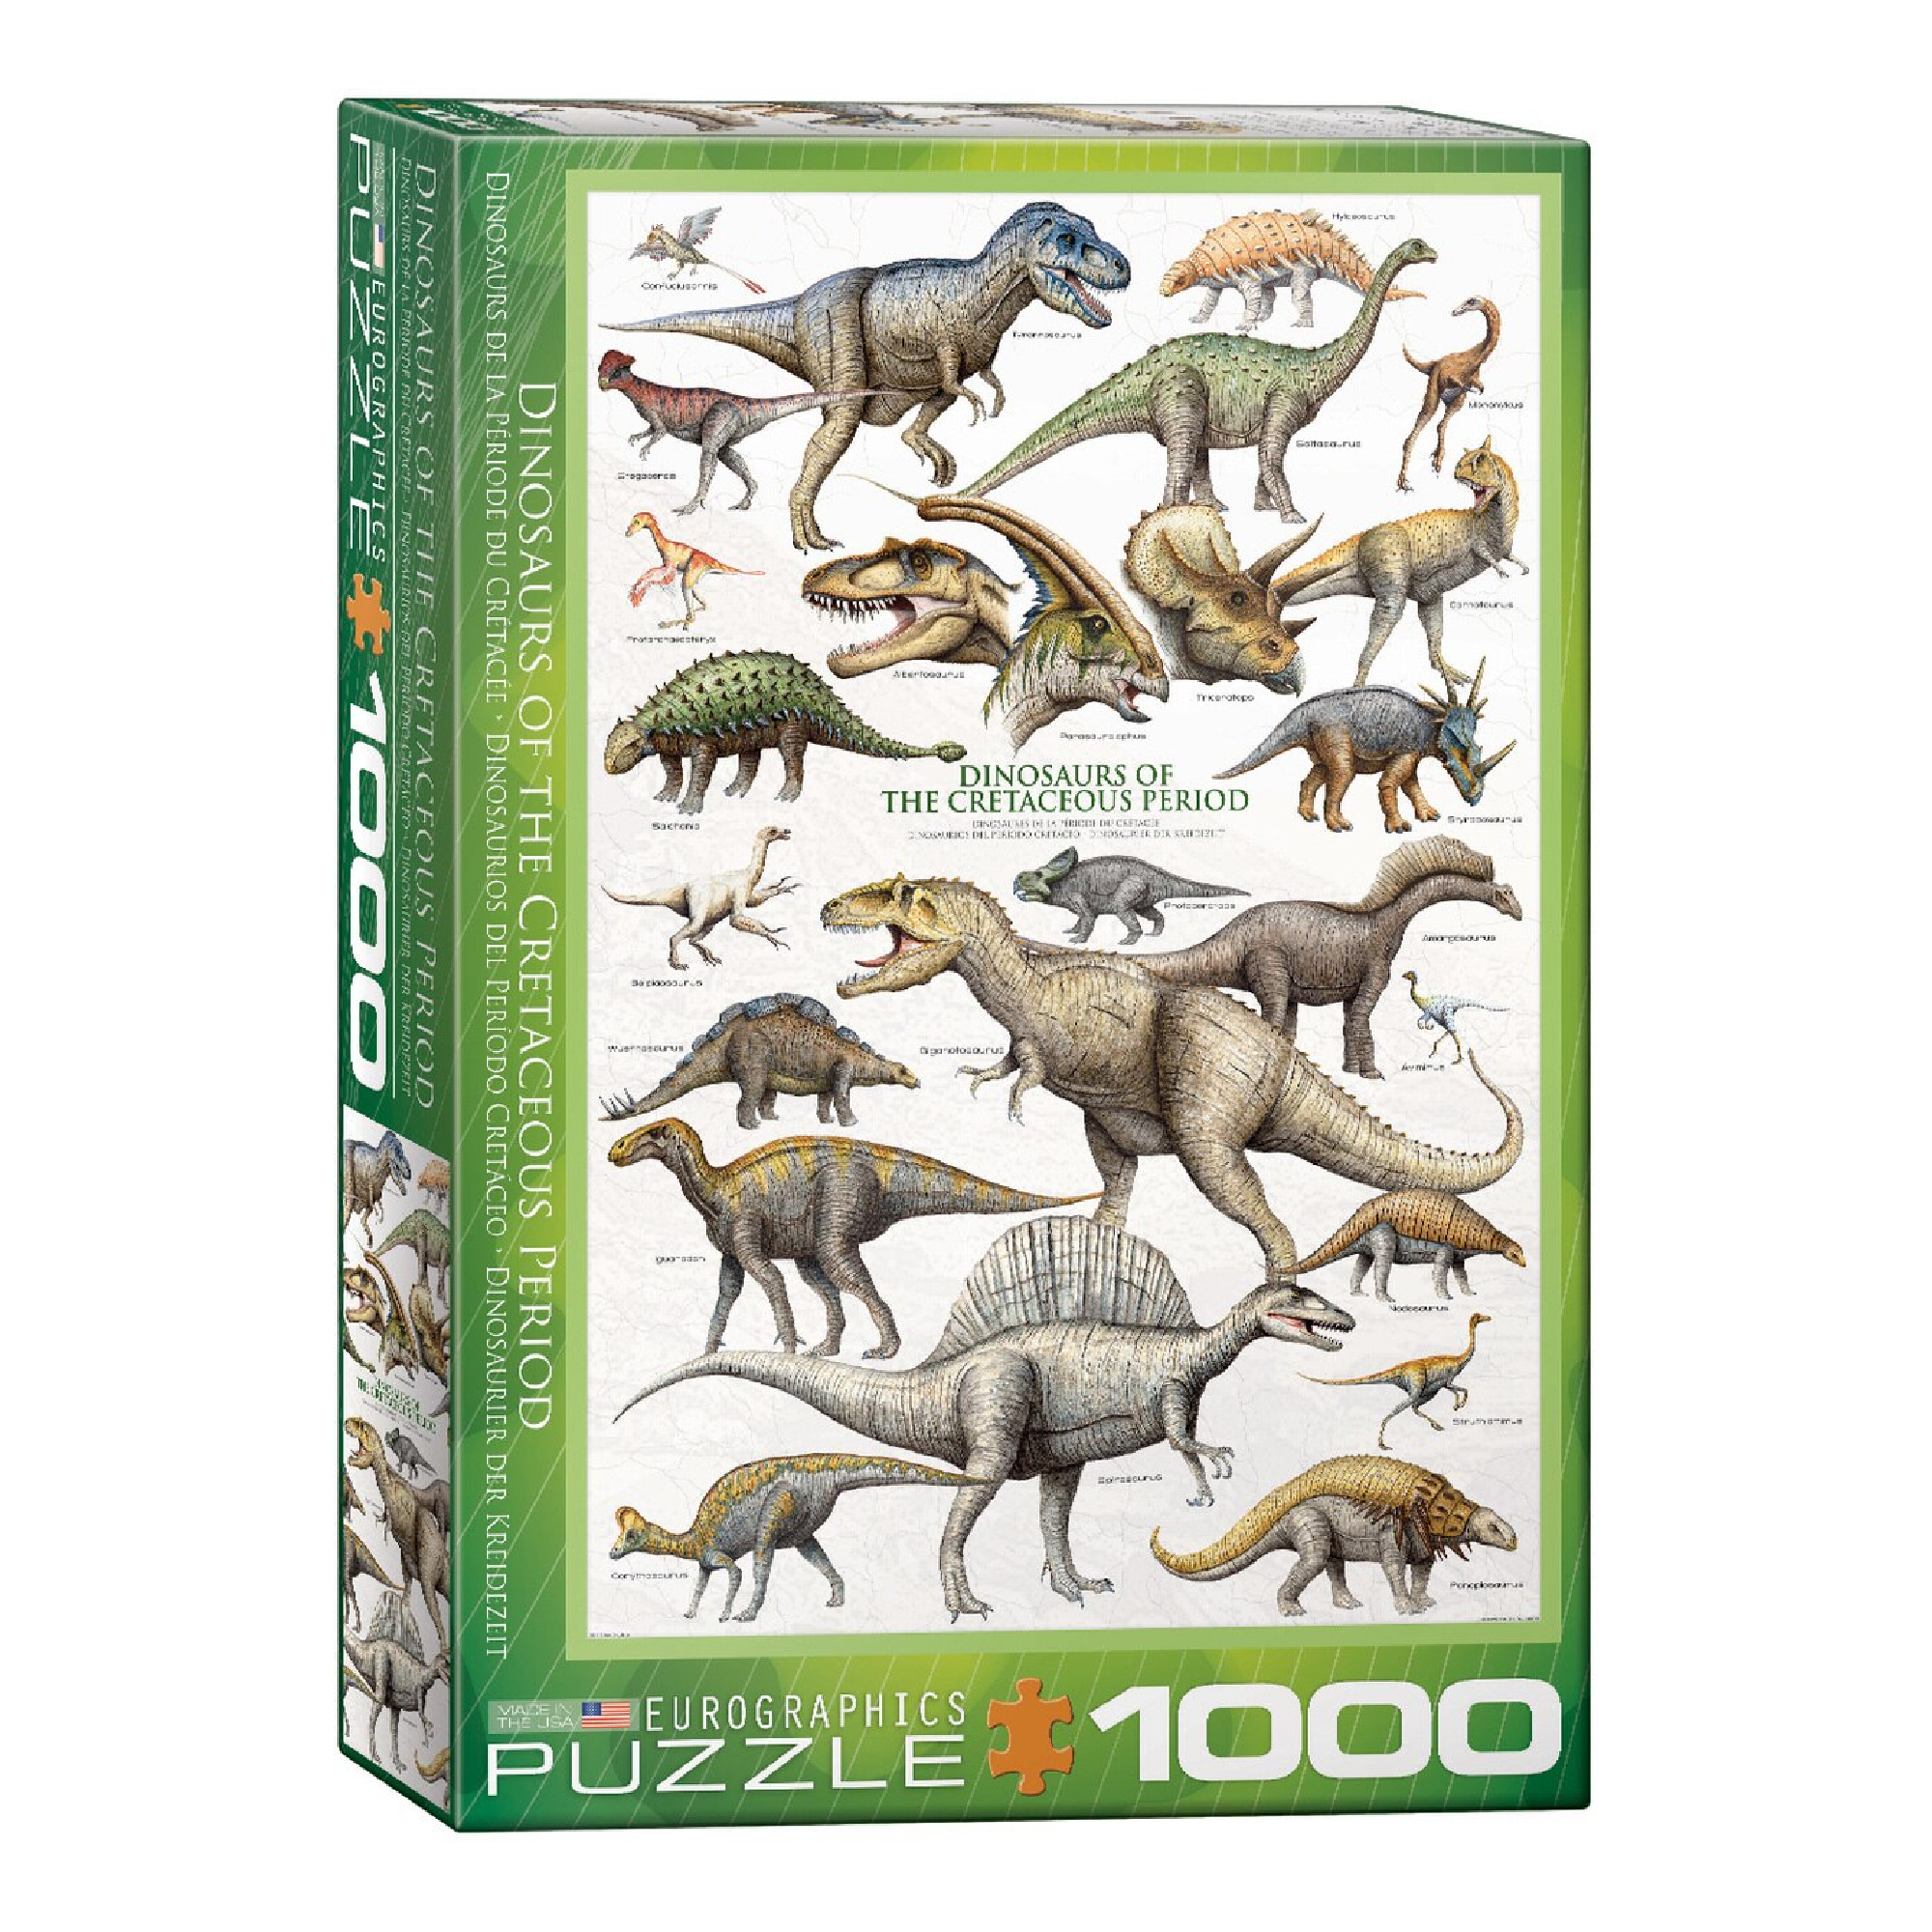 Eurographics Puzzle 1000: Dinosaurs of the Cretaceous Period